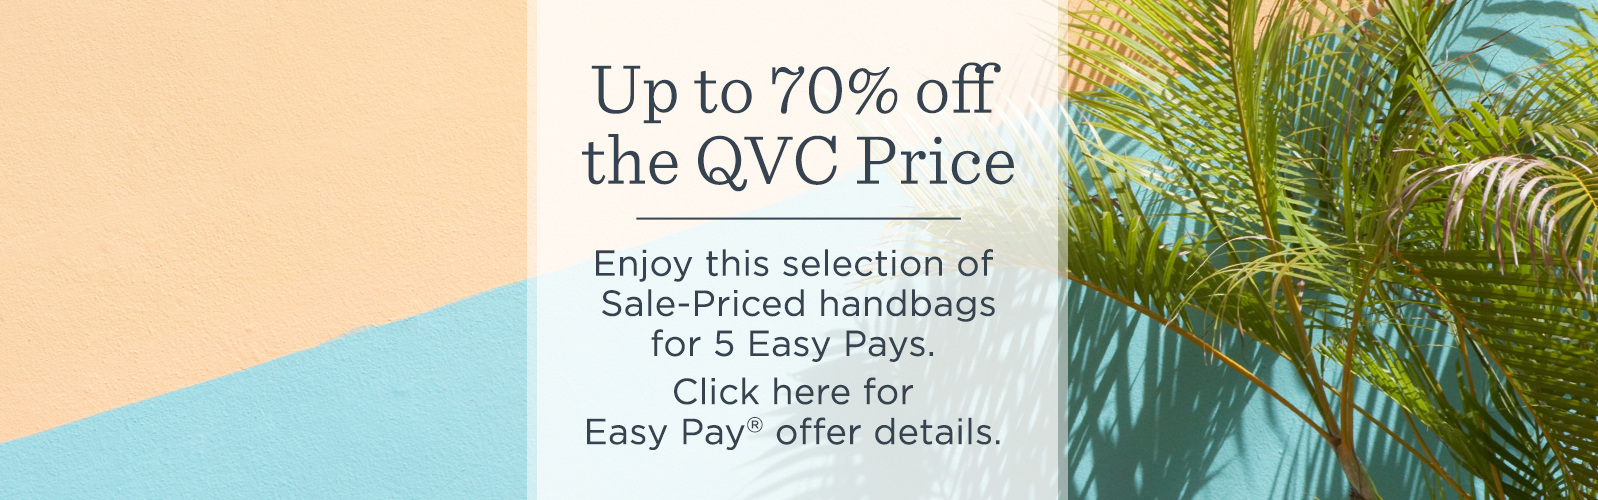 Up to 70% off the QVC Price  Enjoy this selection of Sale-Priced handbags for 5 Easy Pays.  Click here for Easy Pay® offer details.